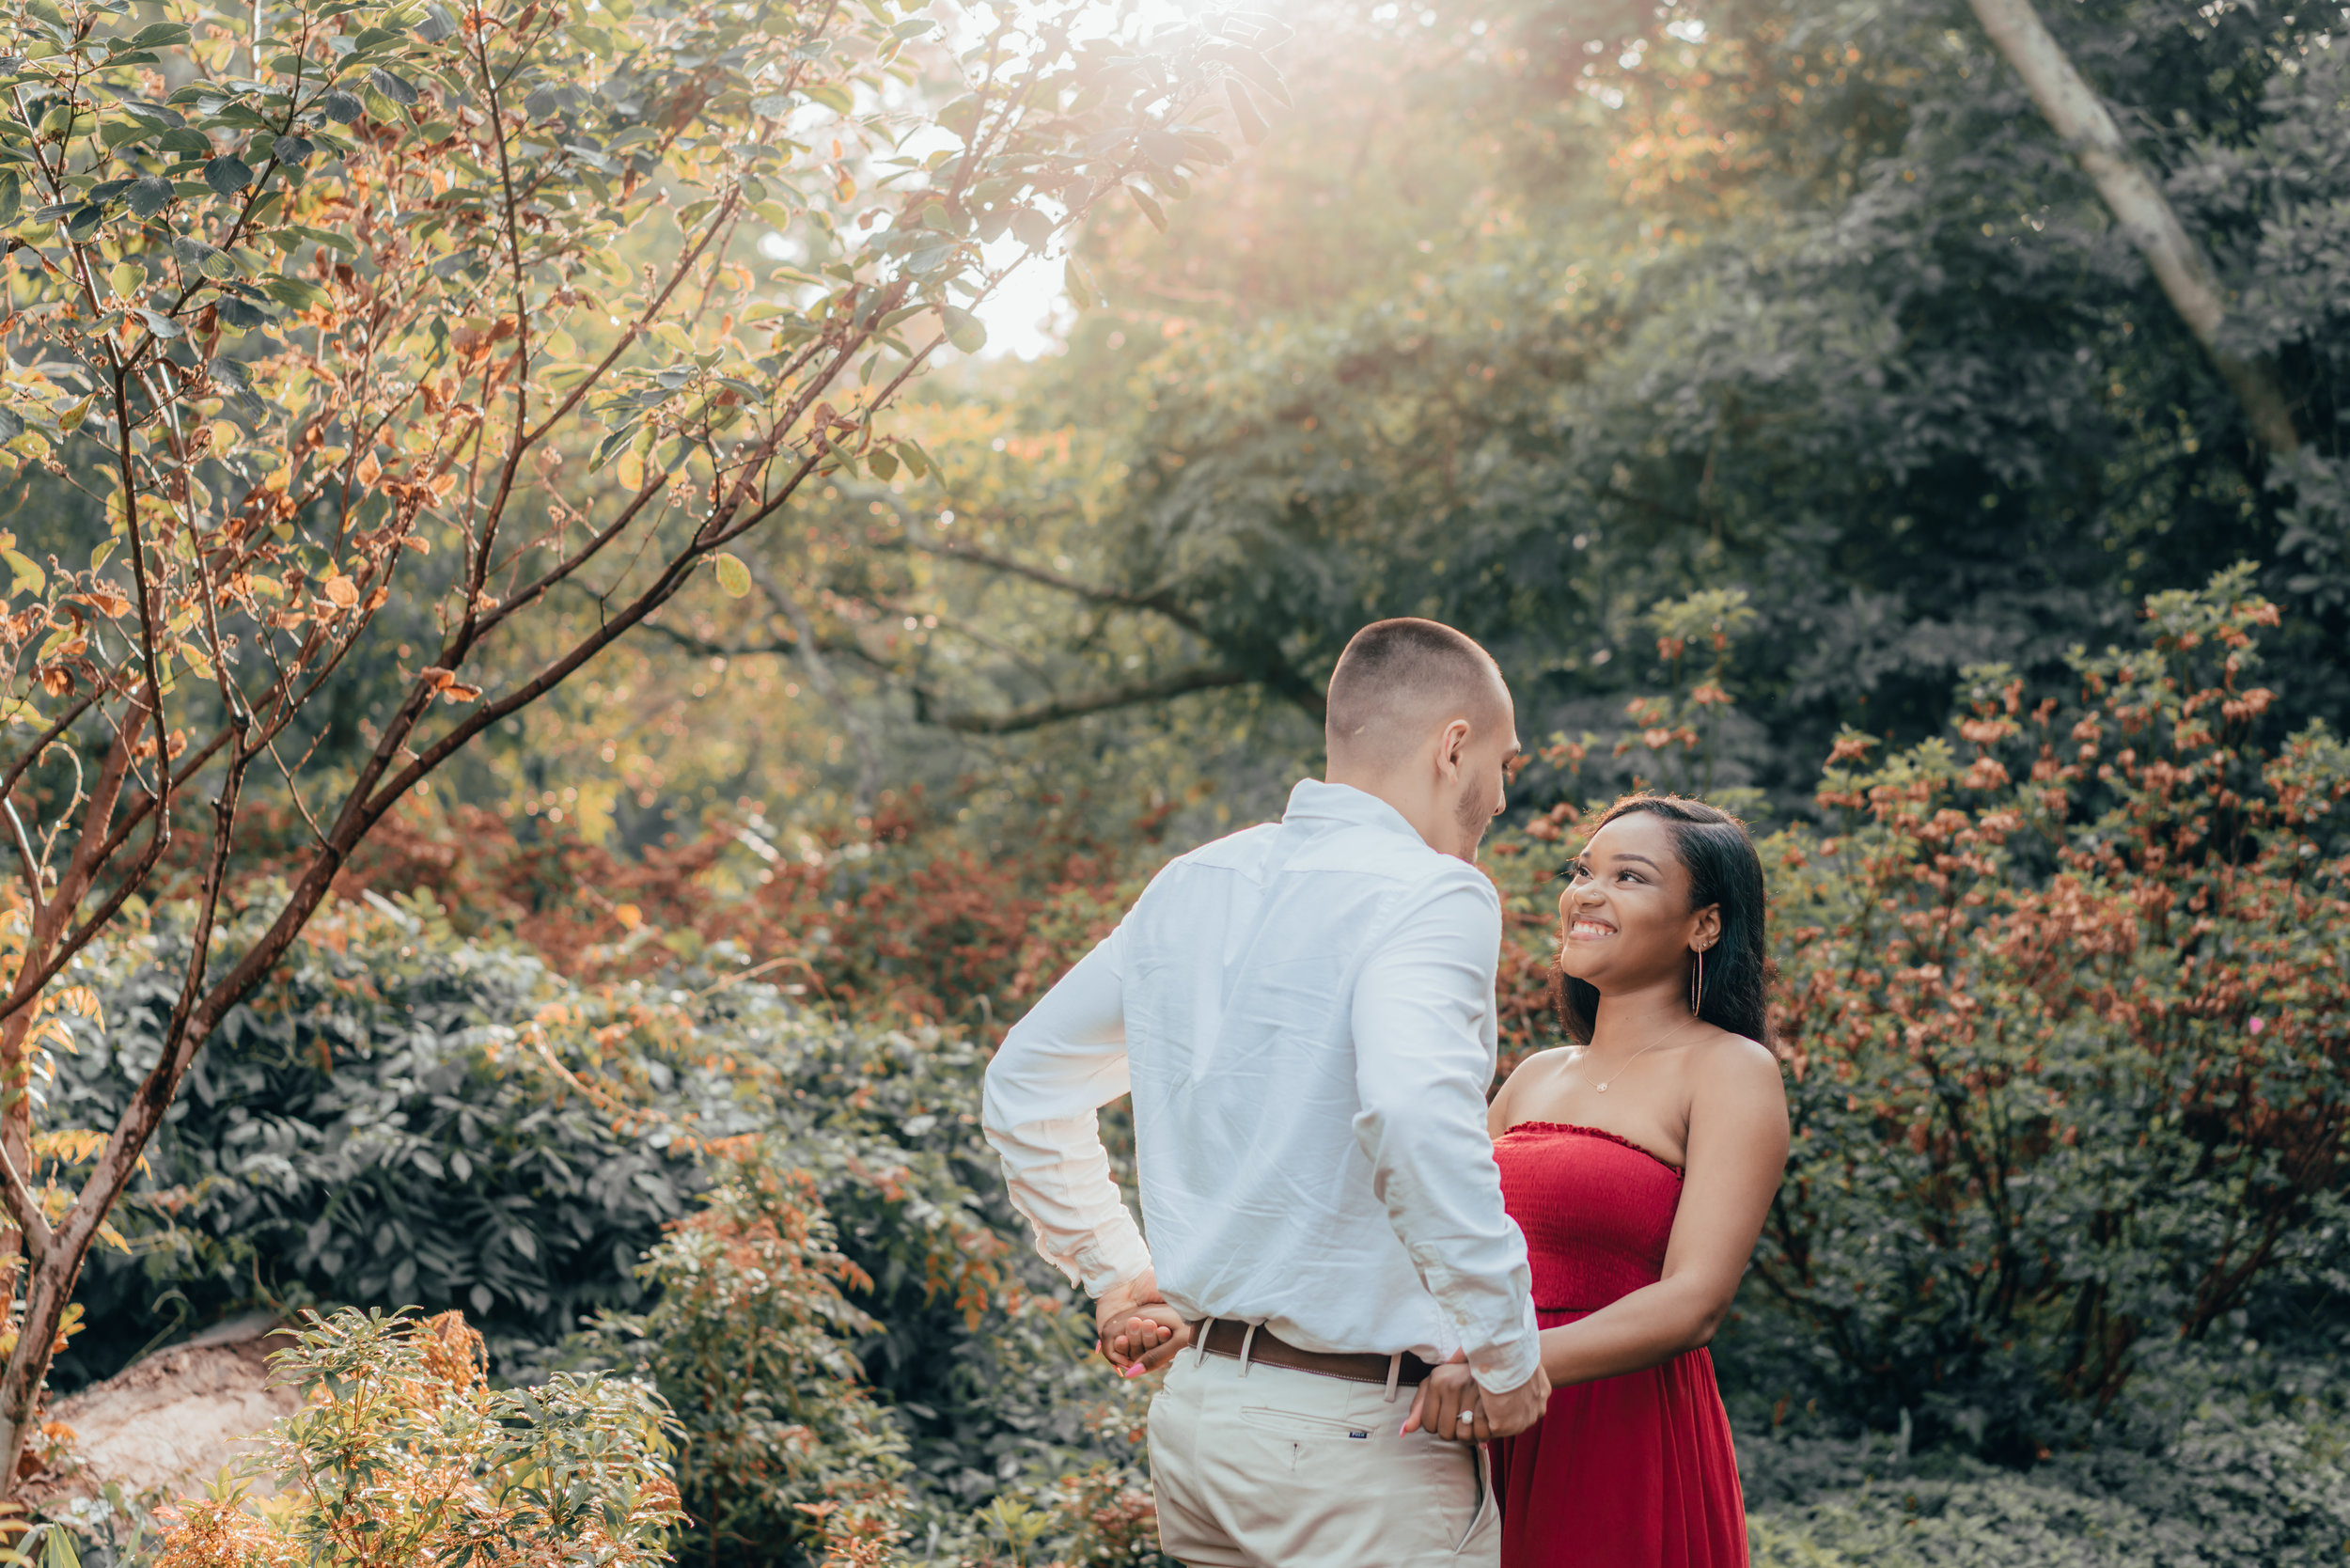 Michaela.Taliaferro.Andrew.Engagement.Photoshoot.Marc.Daniele.Photography.43.jpg